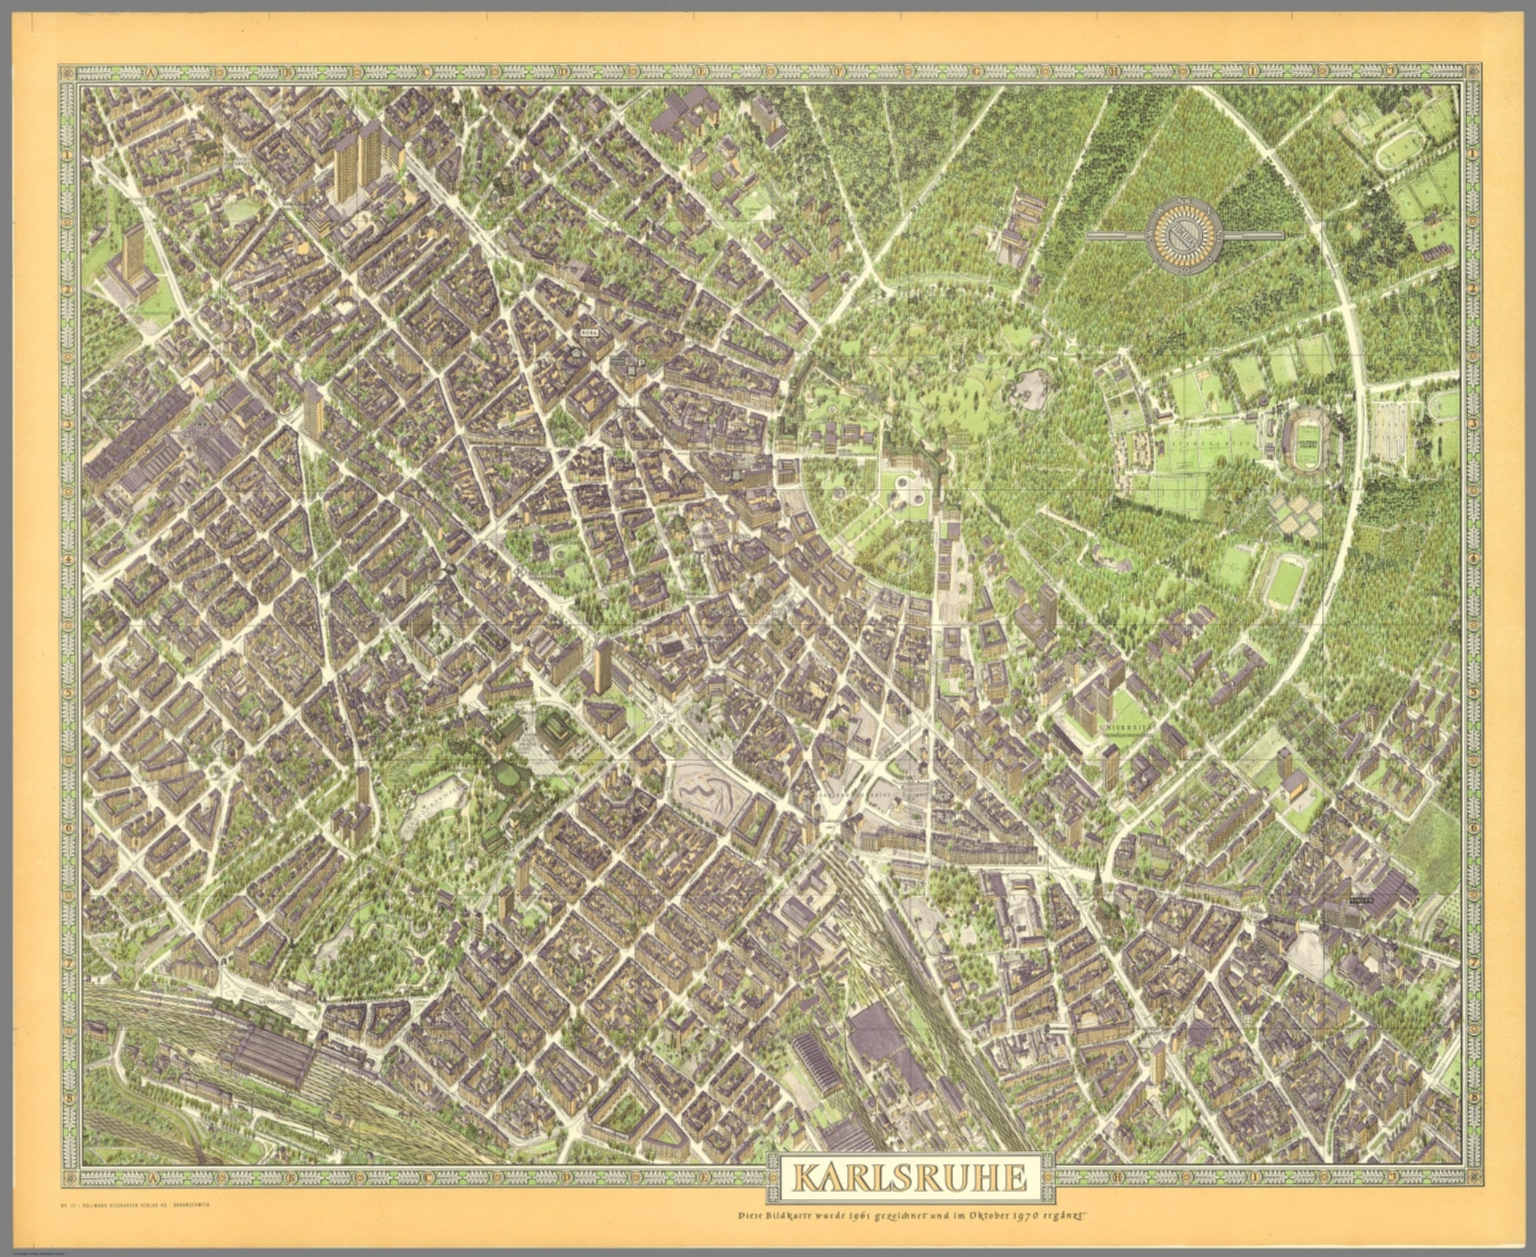 Karlsruhe Map Of Germany.Karlsruhe Germany David Rumsey Historical Map Collection